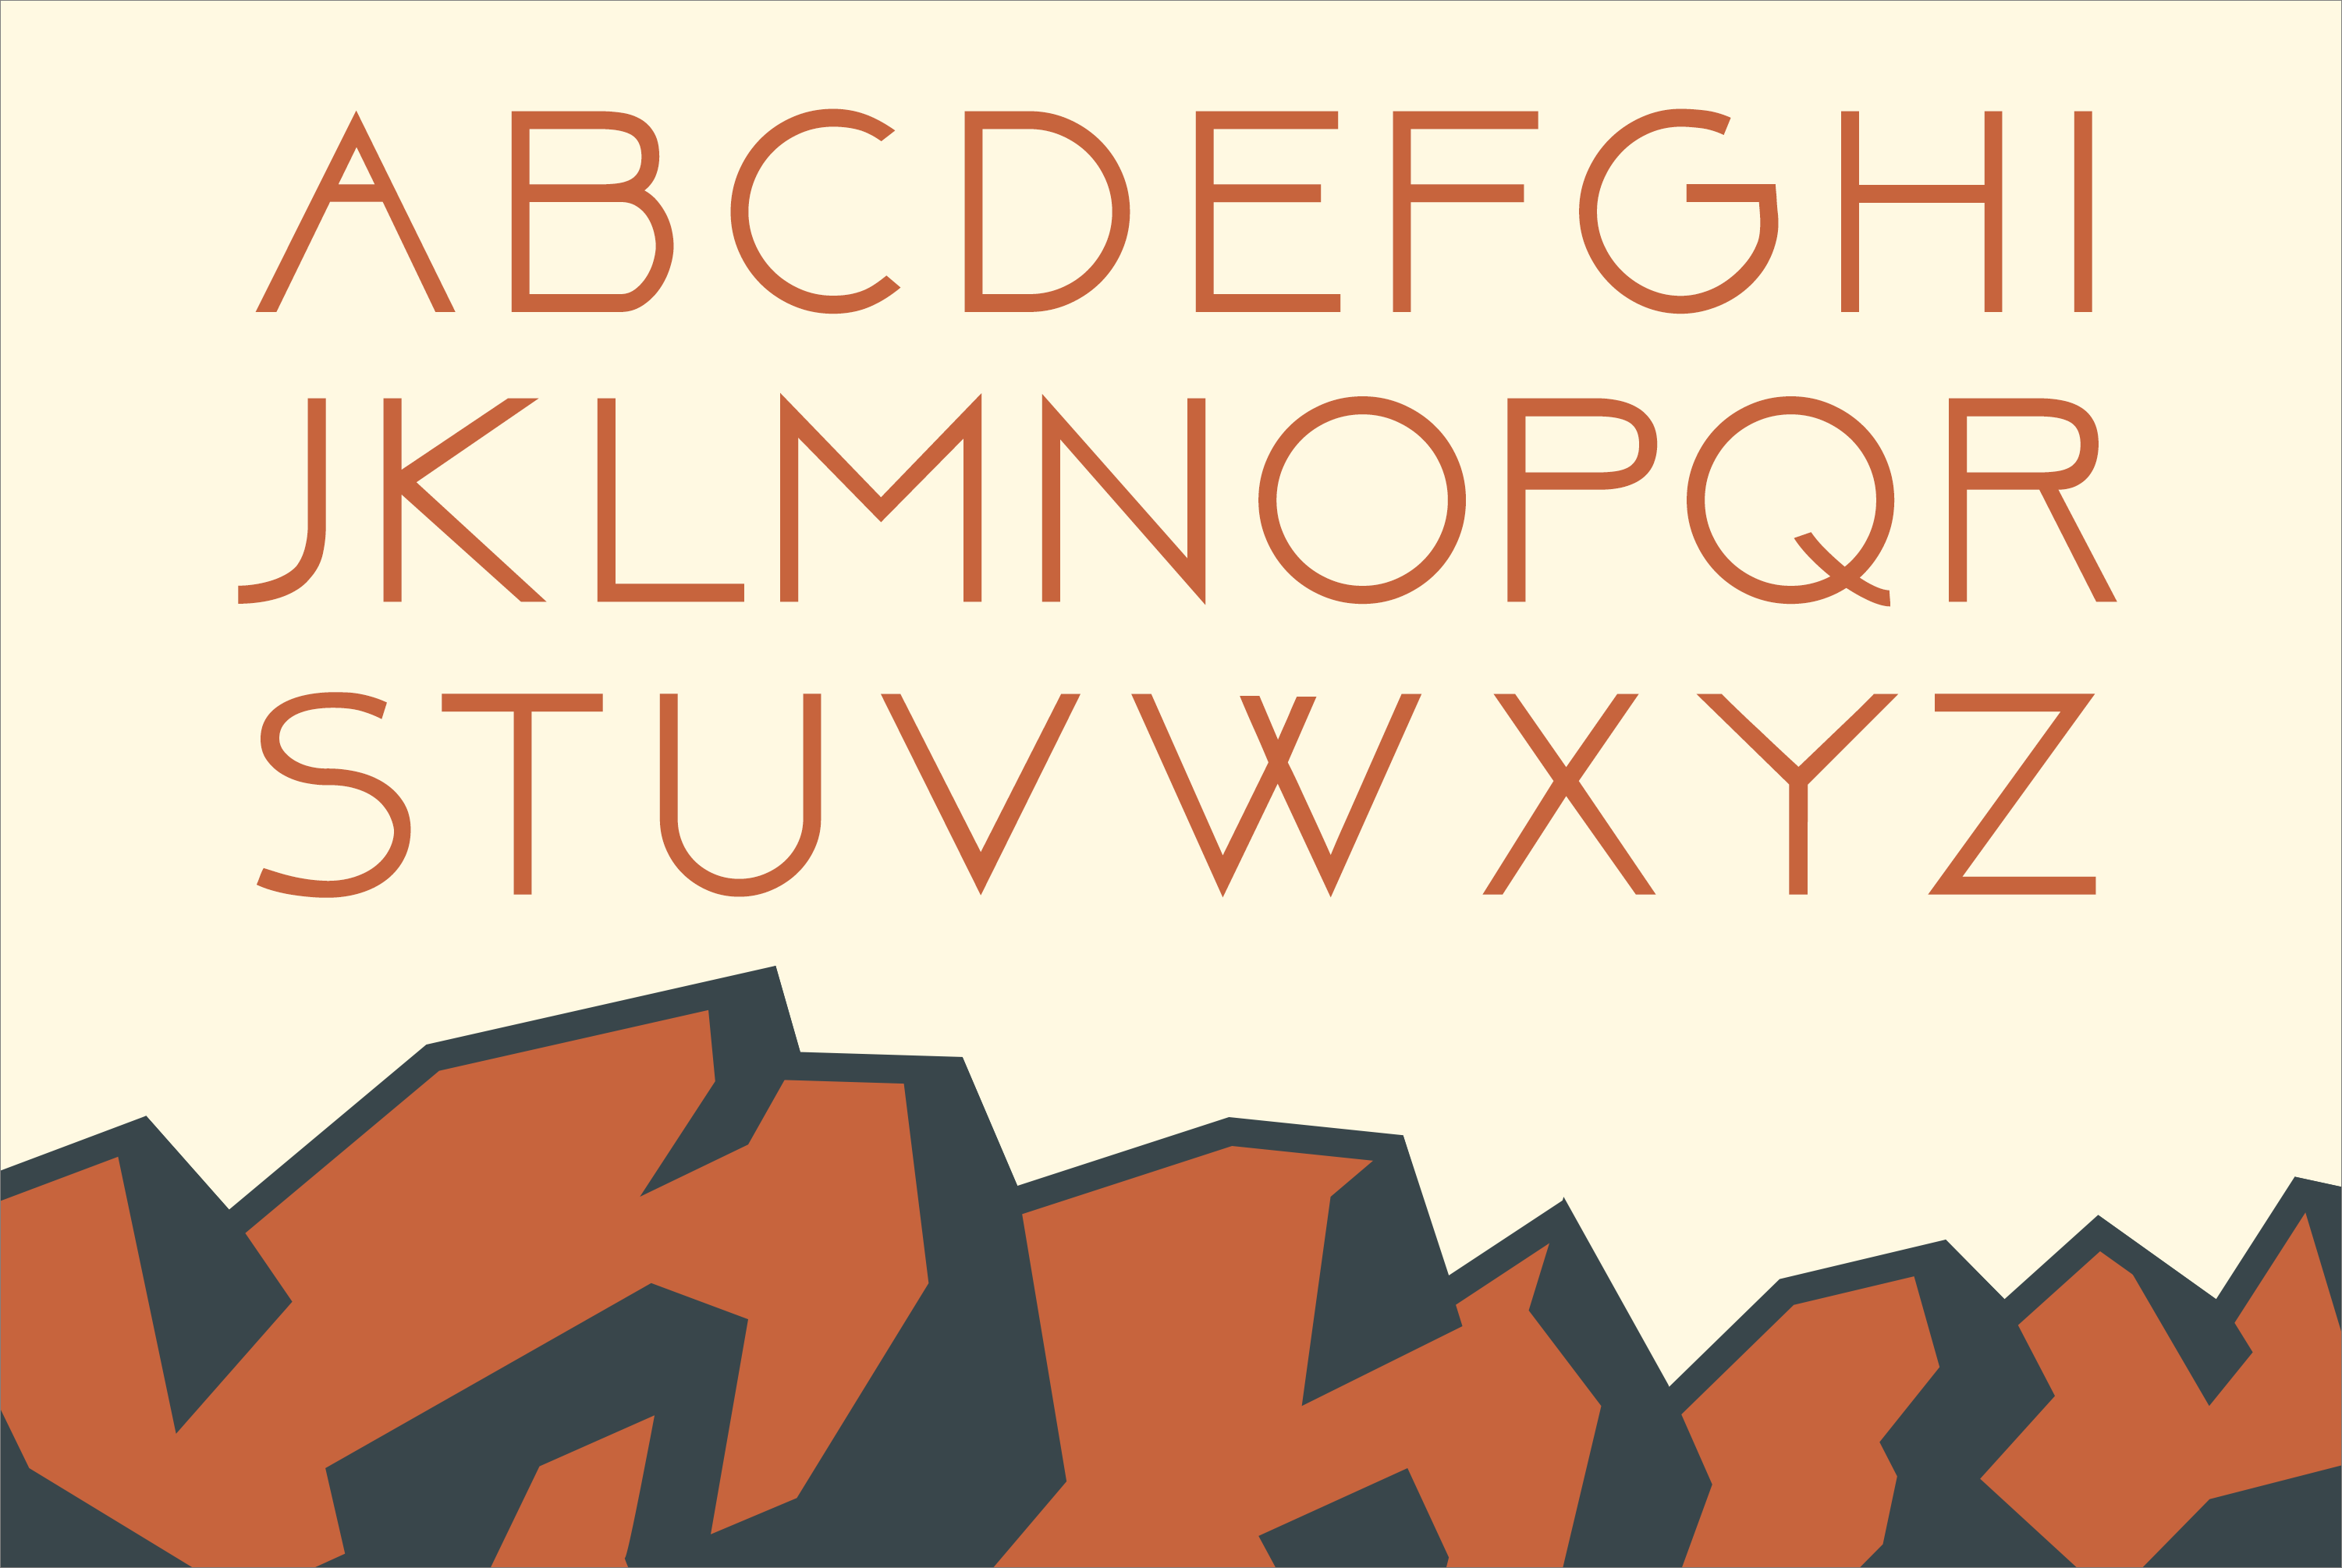 Above DEMO Font - FontSpace